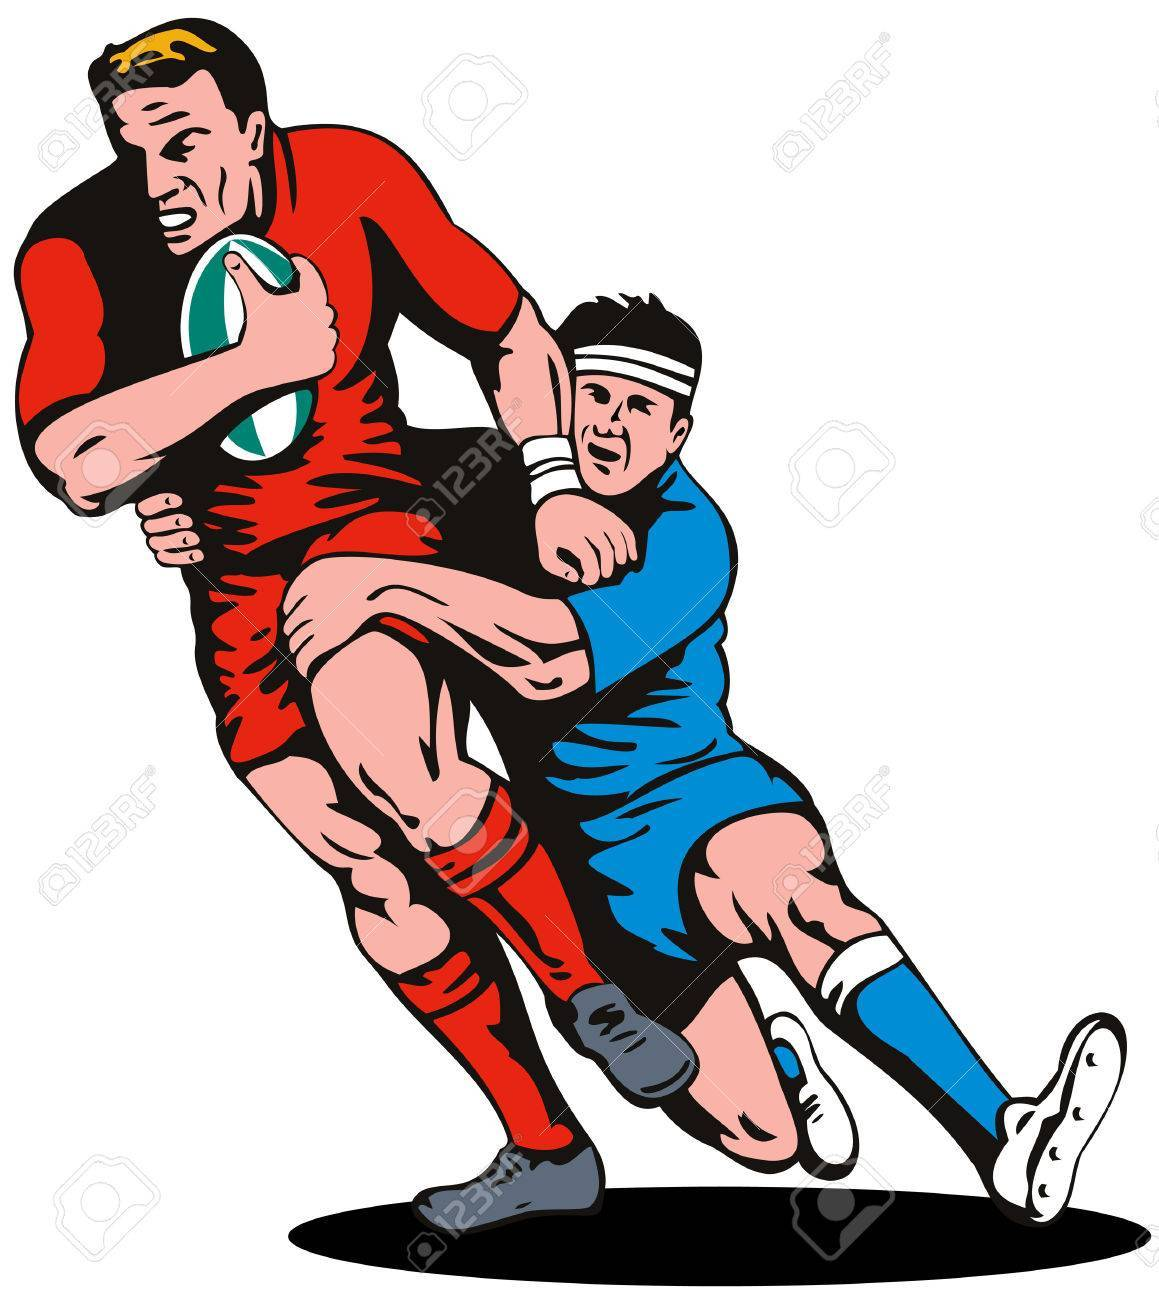 Rugby clipart images svg black and white Rugby clipart free 1 » Clipart Portal svg black and white